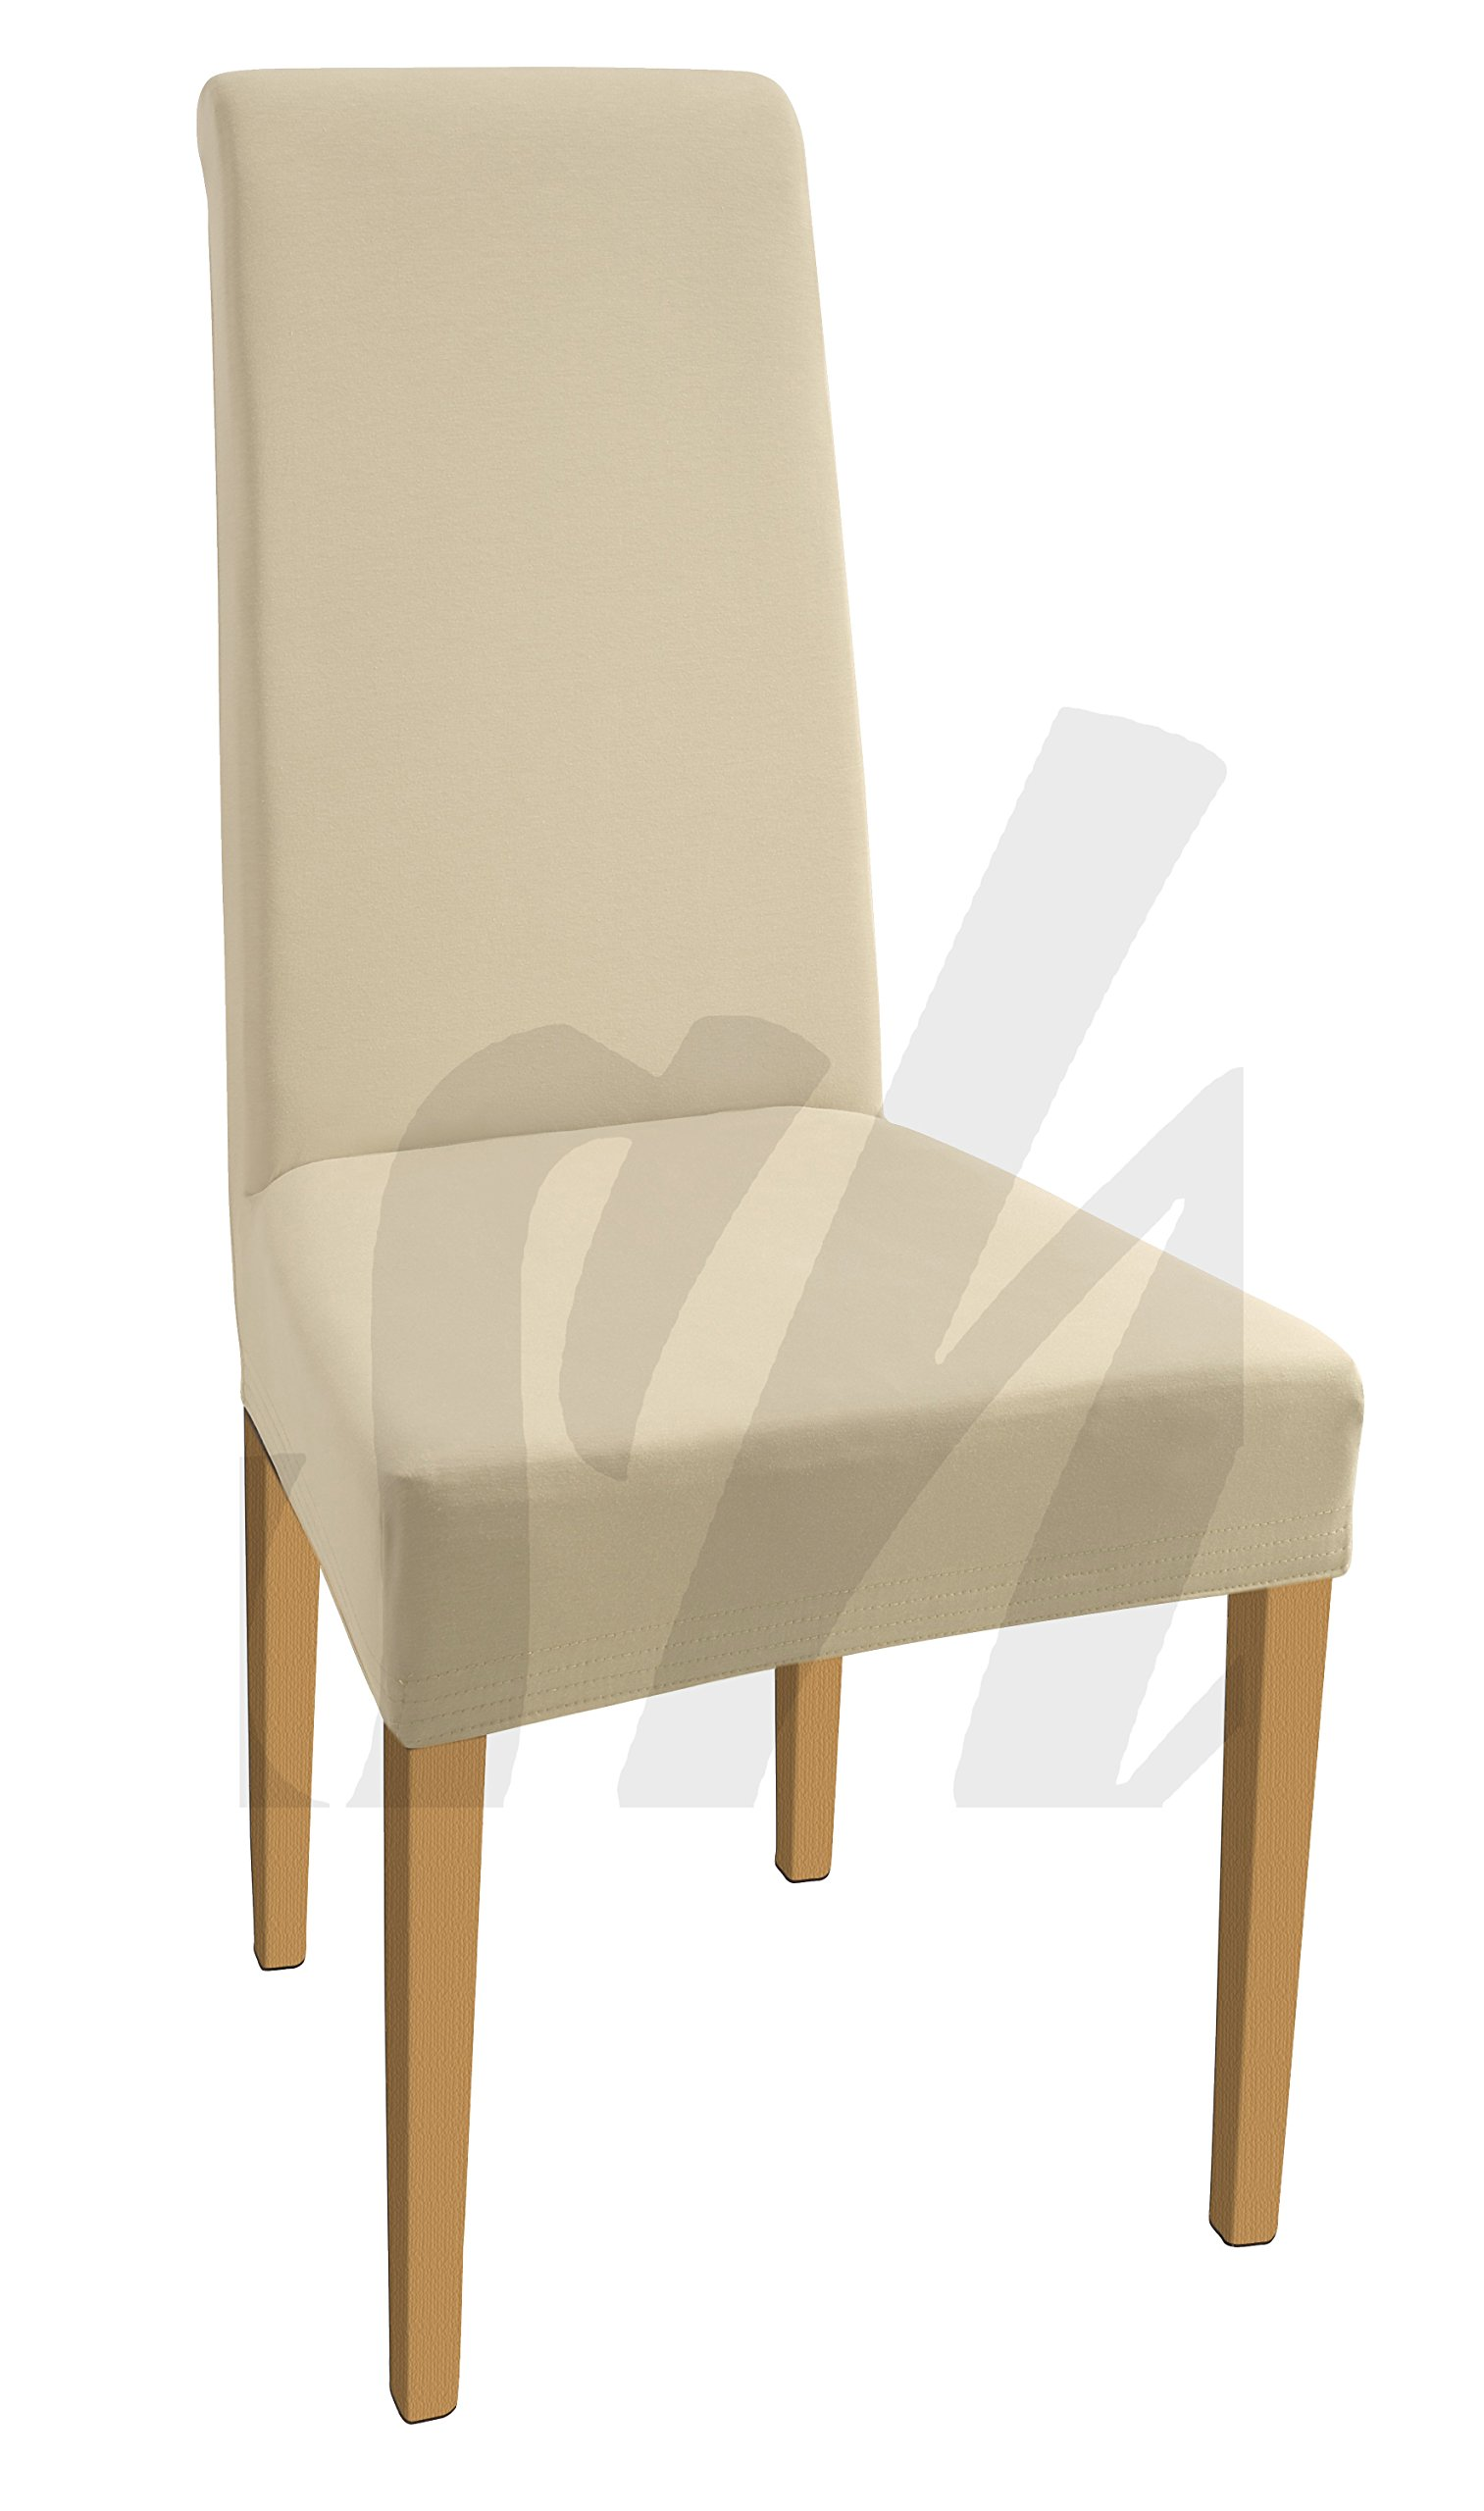 natalie chair covers slipcover seat protector unicoloured bi